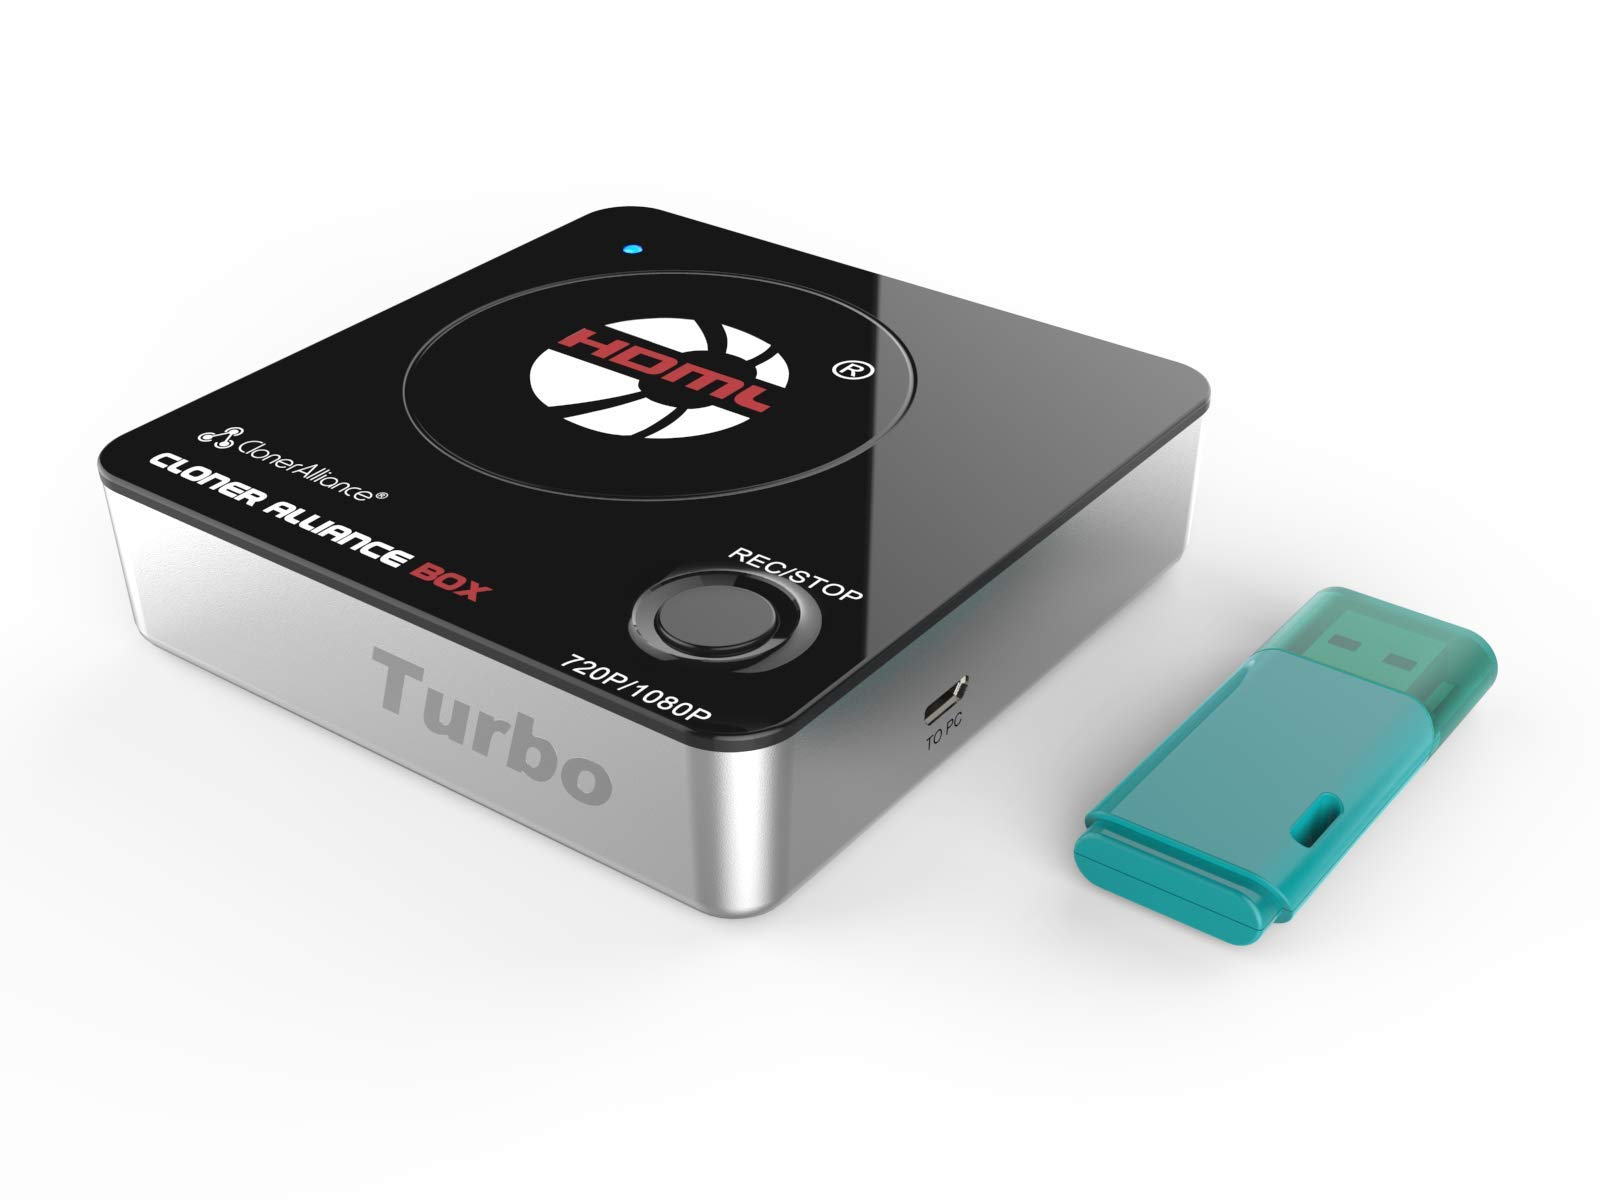 HDML-Cloner Box Turbo, Next-Generation 1080p hdmi Capture Device and Mini Video Capture Box. Schedule capturing with New Hi-Speed Communication Port. 16GB Flash Drive Included. by ClonerAlliance